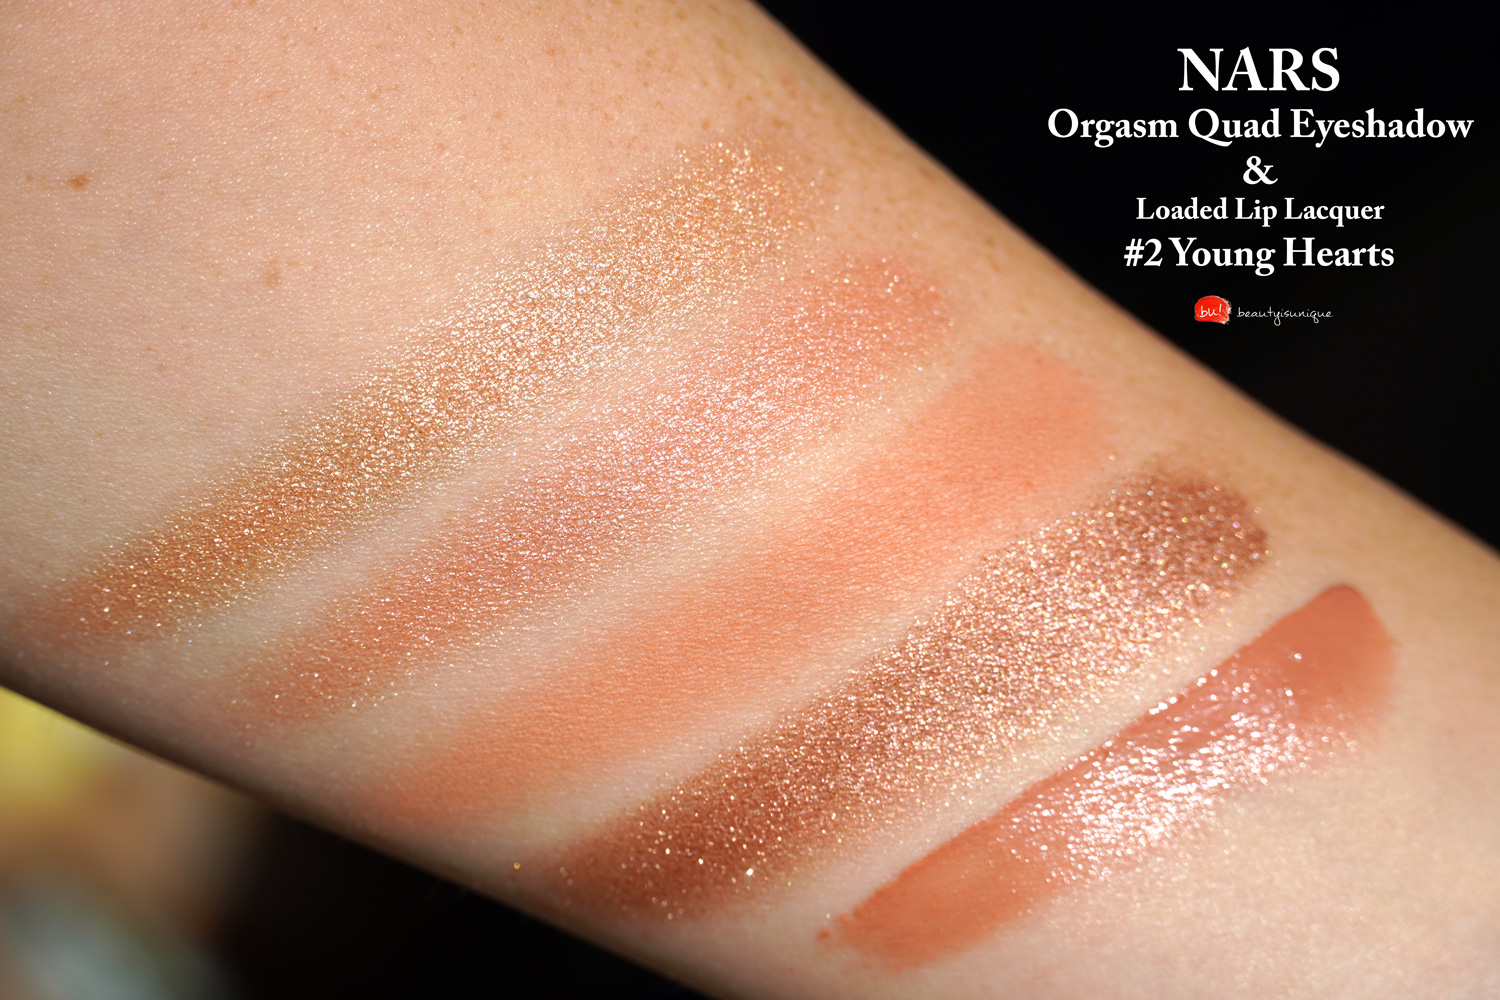 nars-loqded-lip-lacquer-young-hearts-swatches